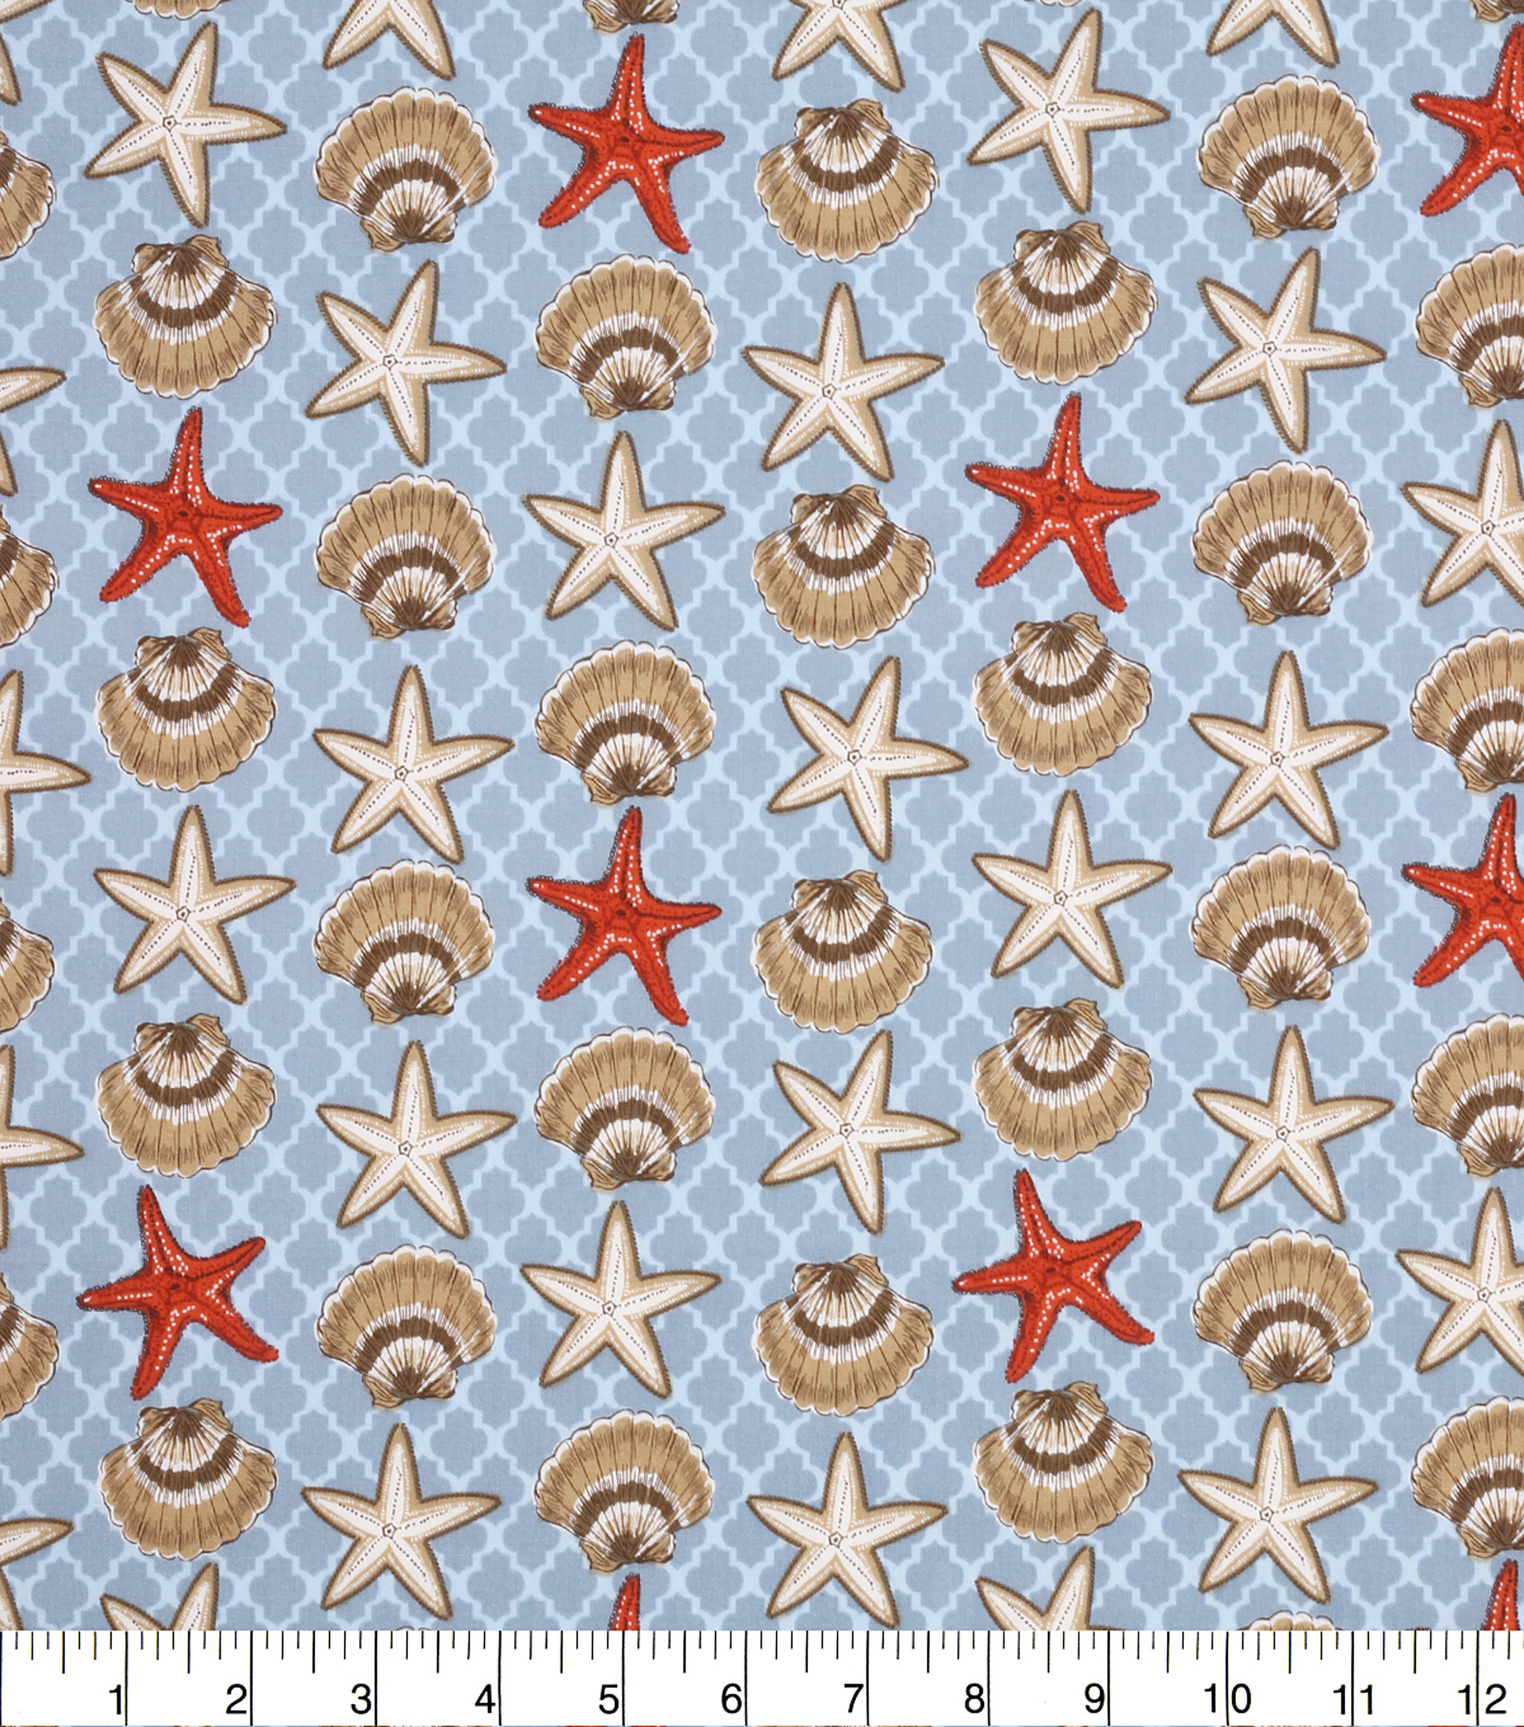 Novelty Cotton Fabric 43''-Seashells & Starfish